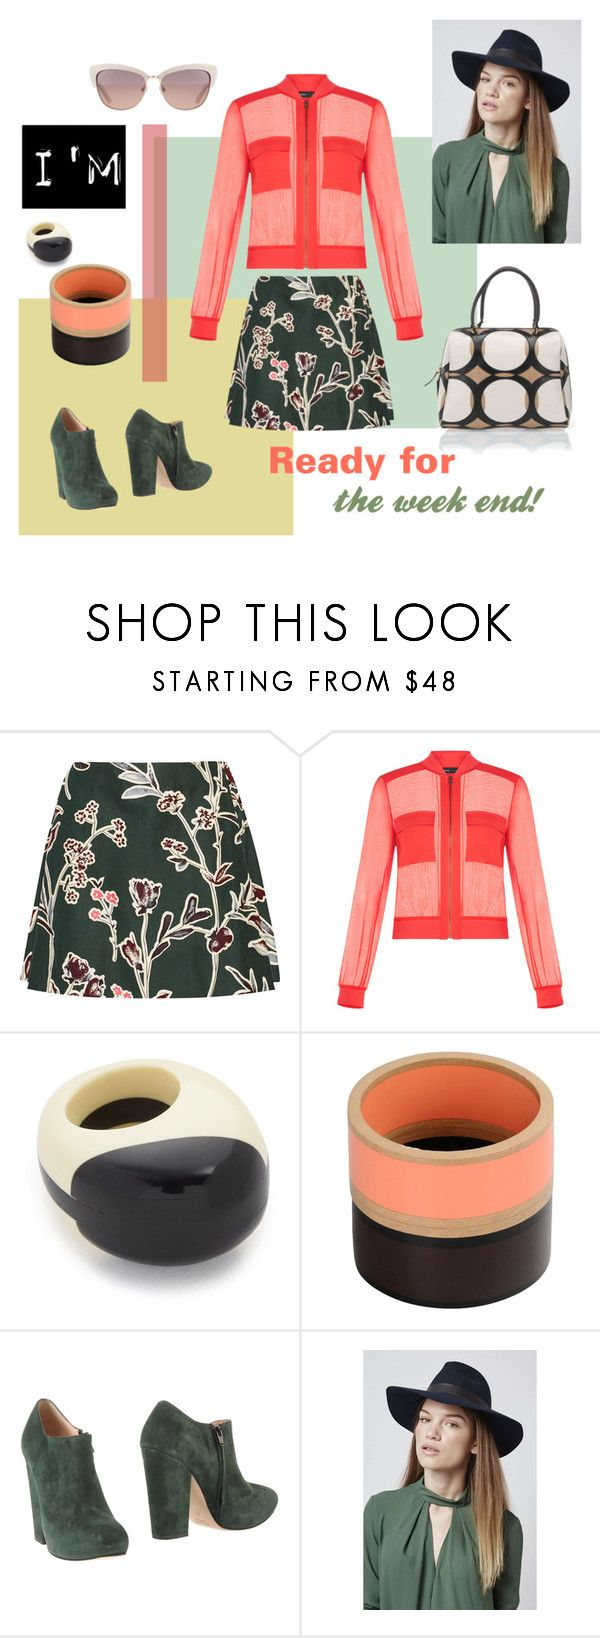 """""""Ready for the week end!"""" by pinfi on Polyvore featuring Marni, BCBGMAXAZRIA, Noa, Topshop, Kate Spade and vintage #fashion #trends"""